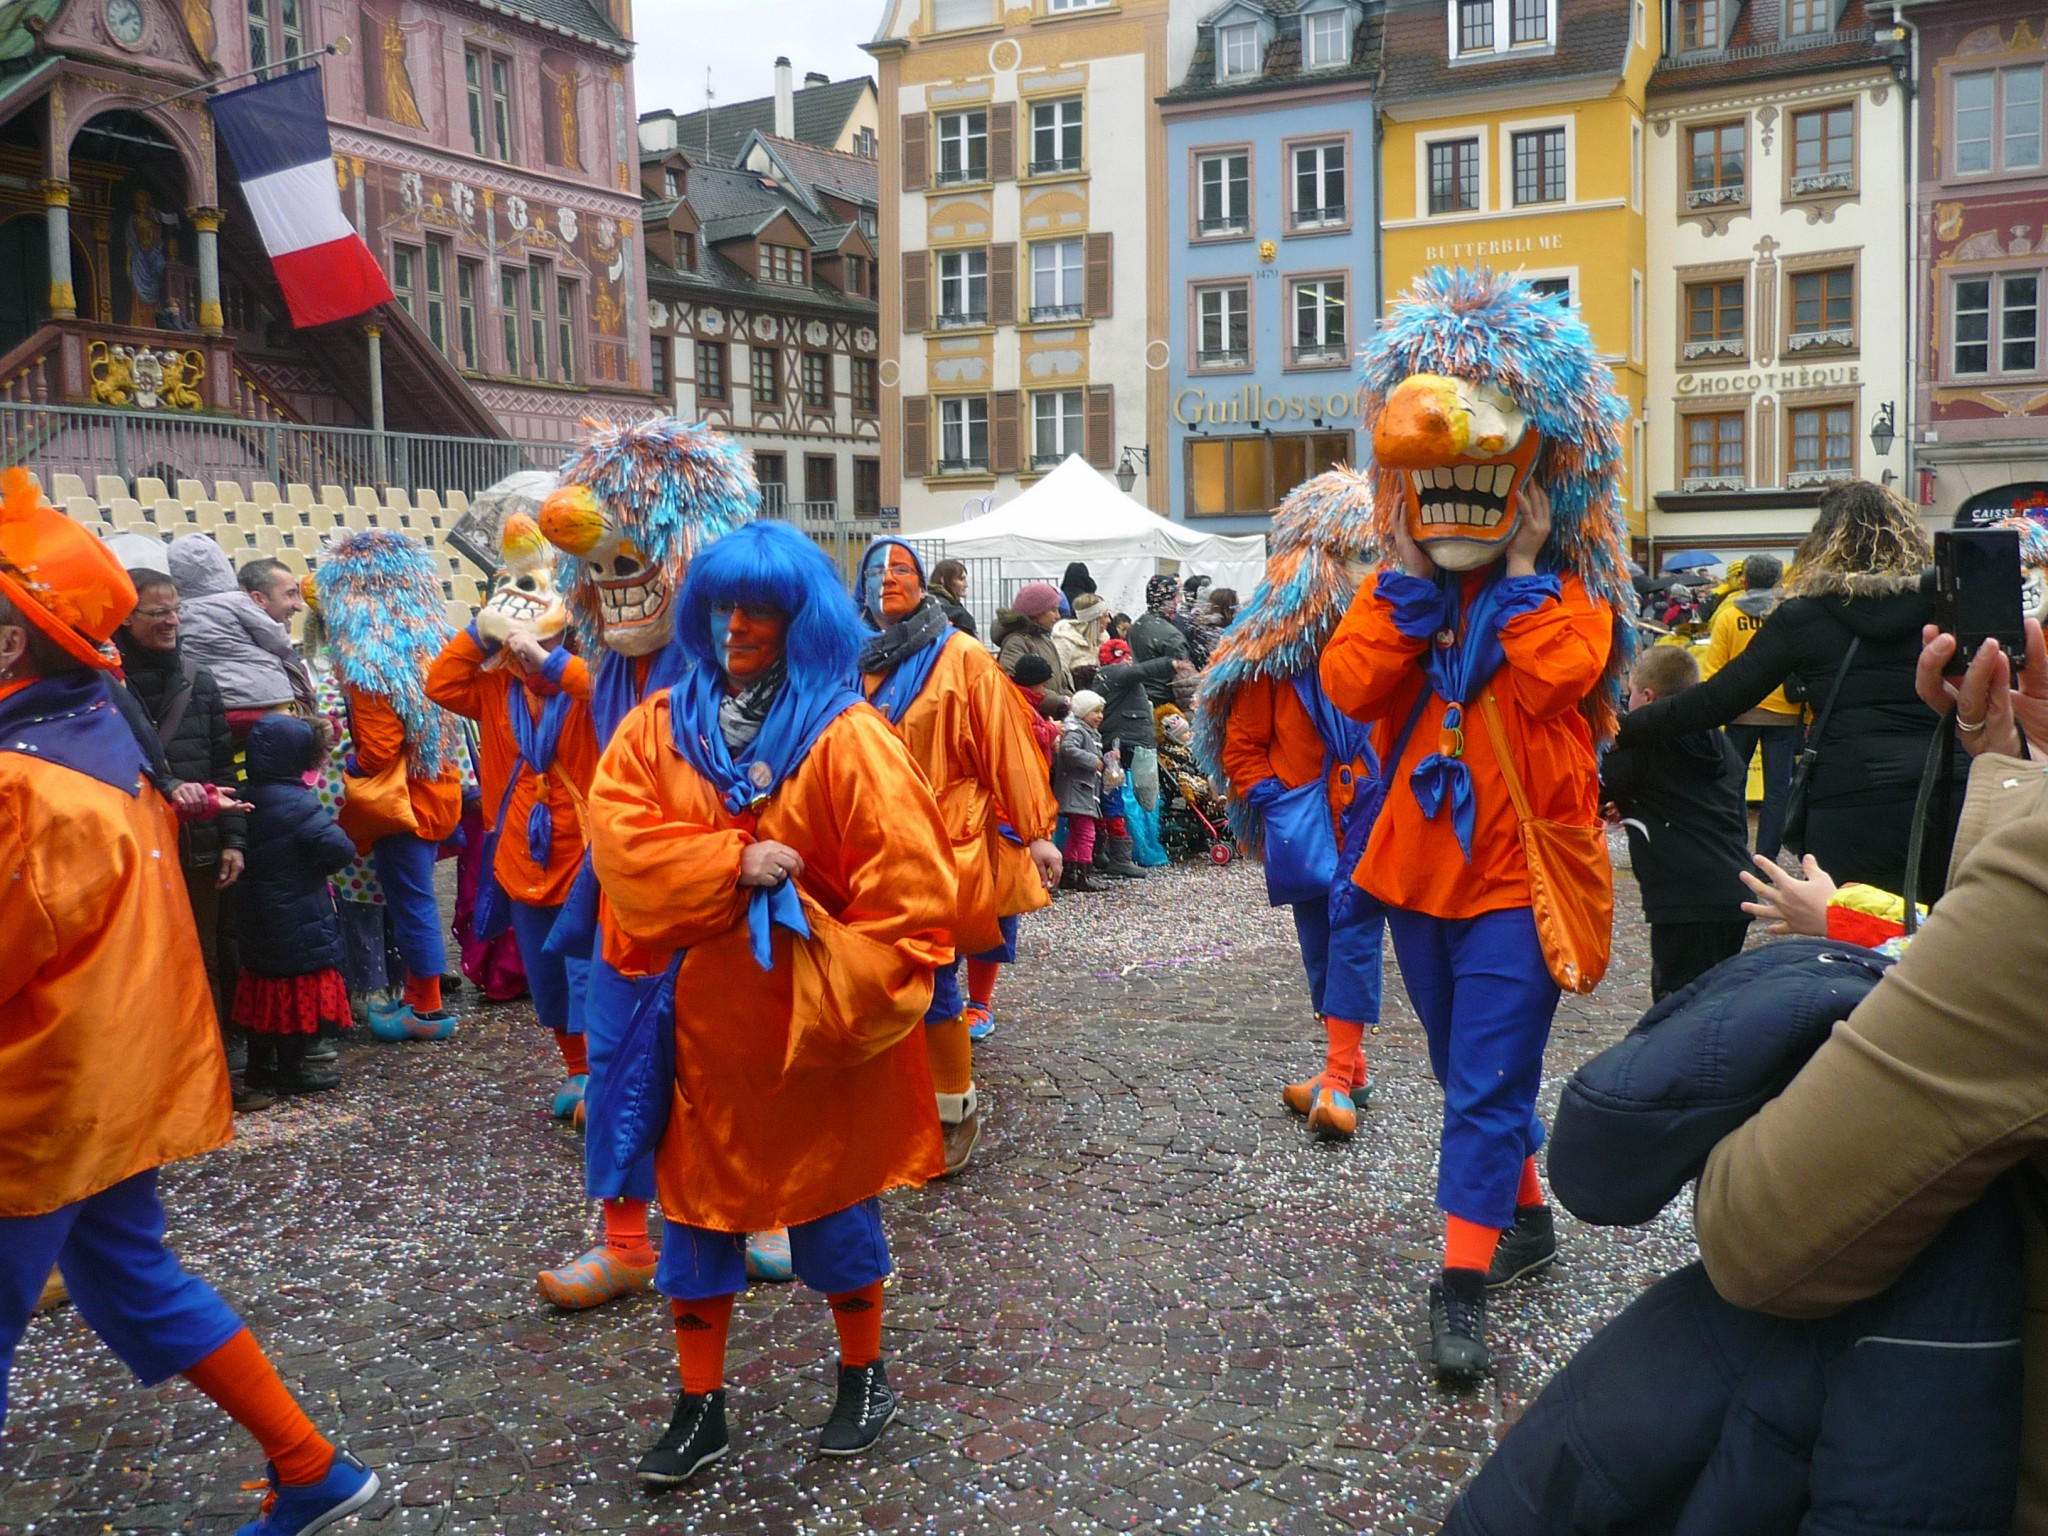 the history of mardi gras in france Mardi gras had been celebrated as a major holiday in france since the middle ages (the official holiday began in 1582, when the pope sanctioned mardi gras as an official christian holiday to mark the beginning of lent) the early explorers and settlers of both new orleans and mobile arrived with a tradition of mardi gras and adapted the.